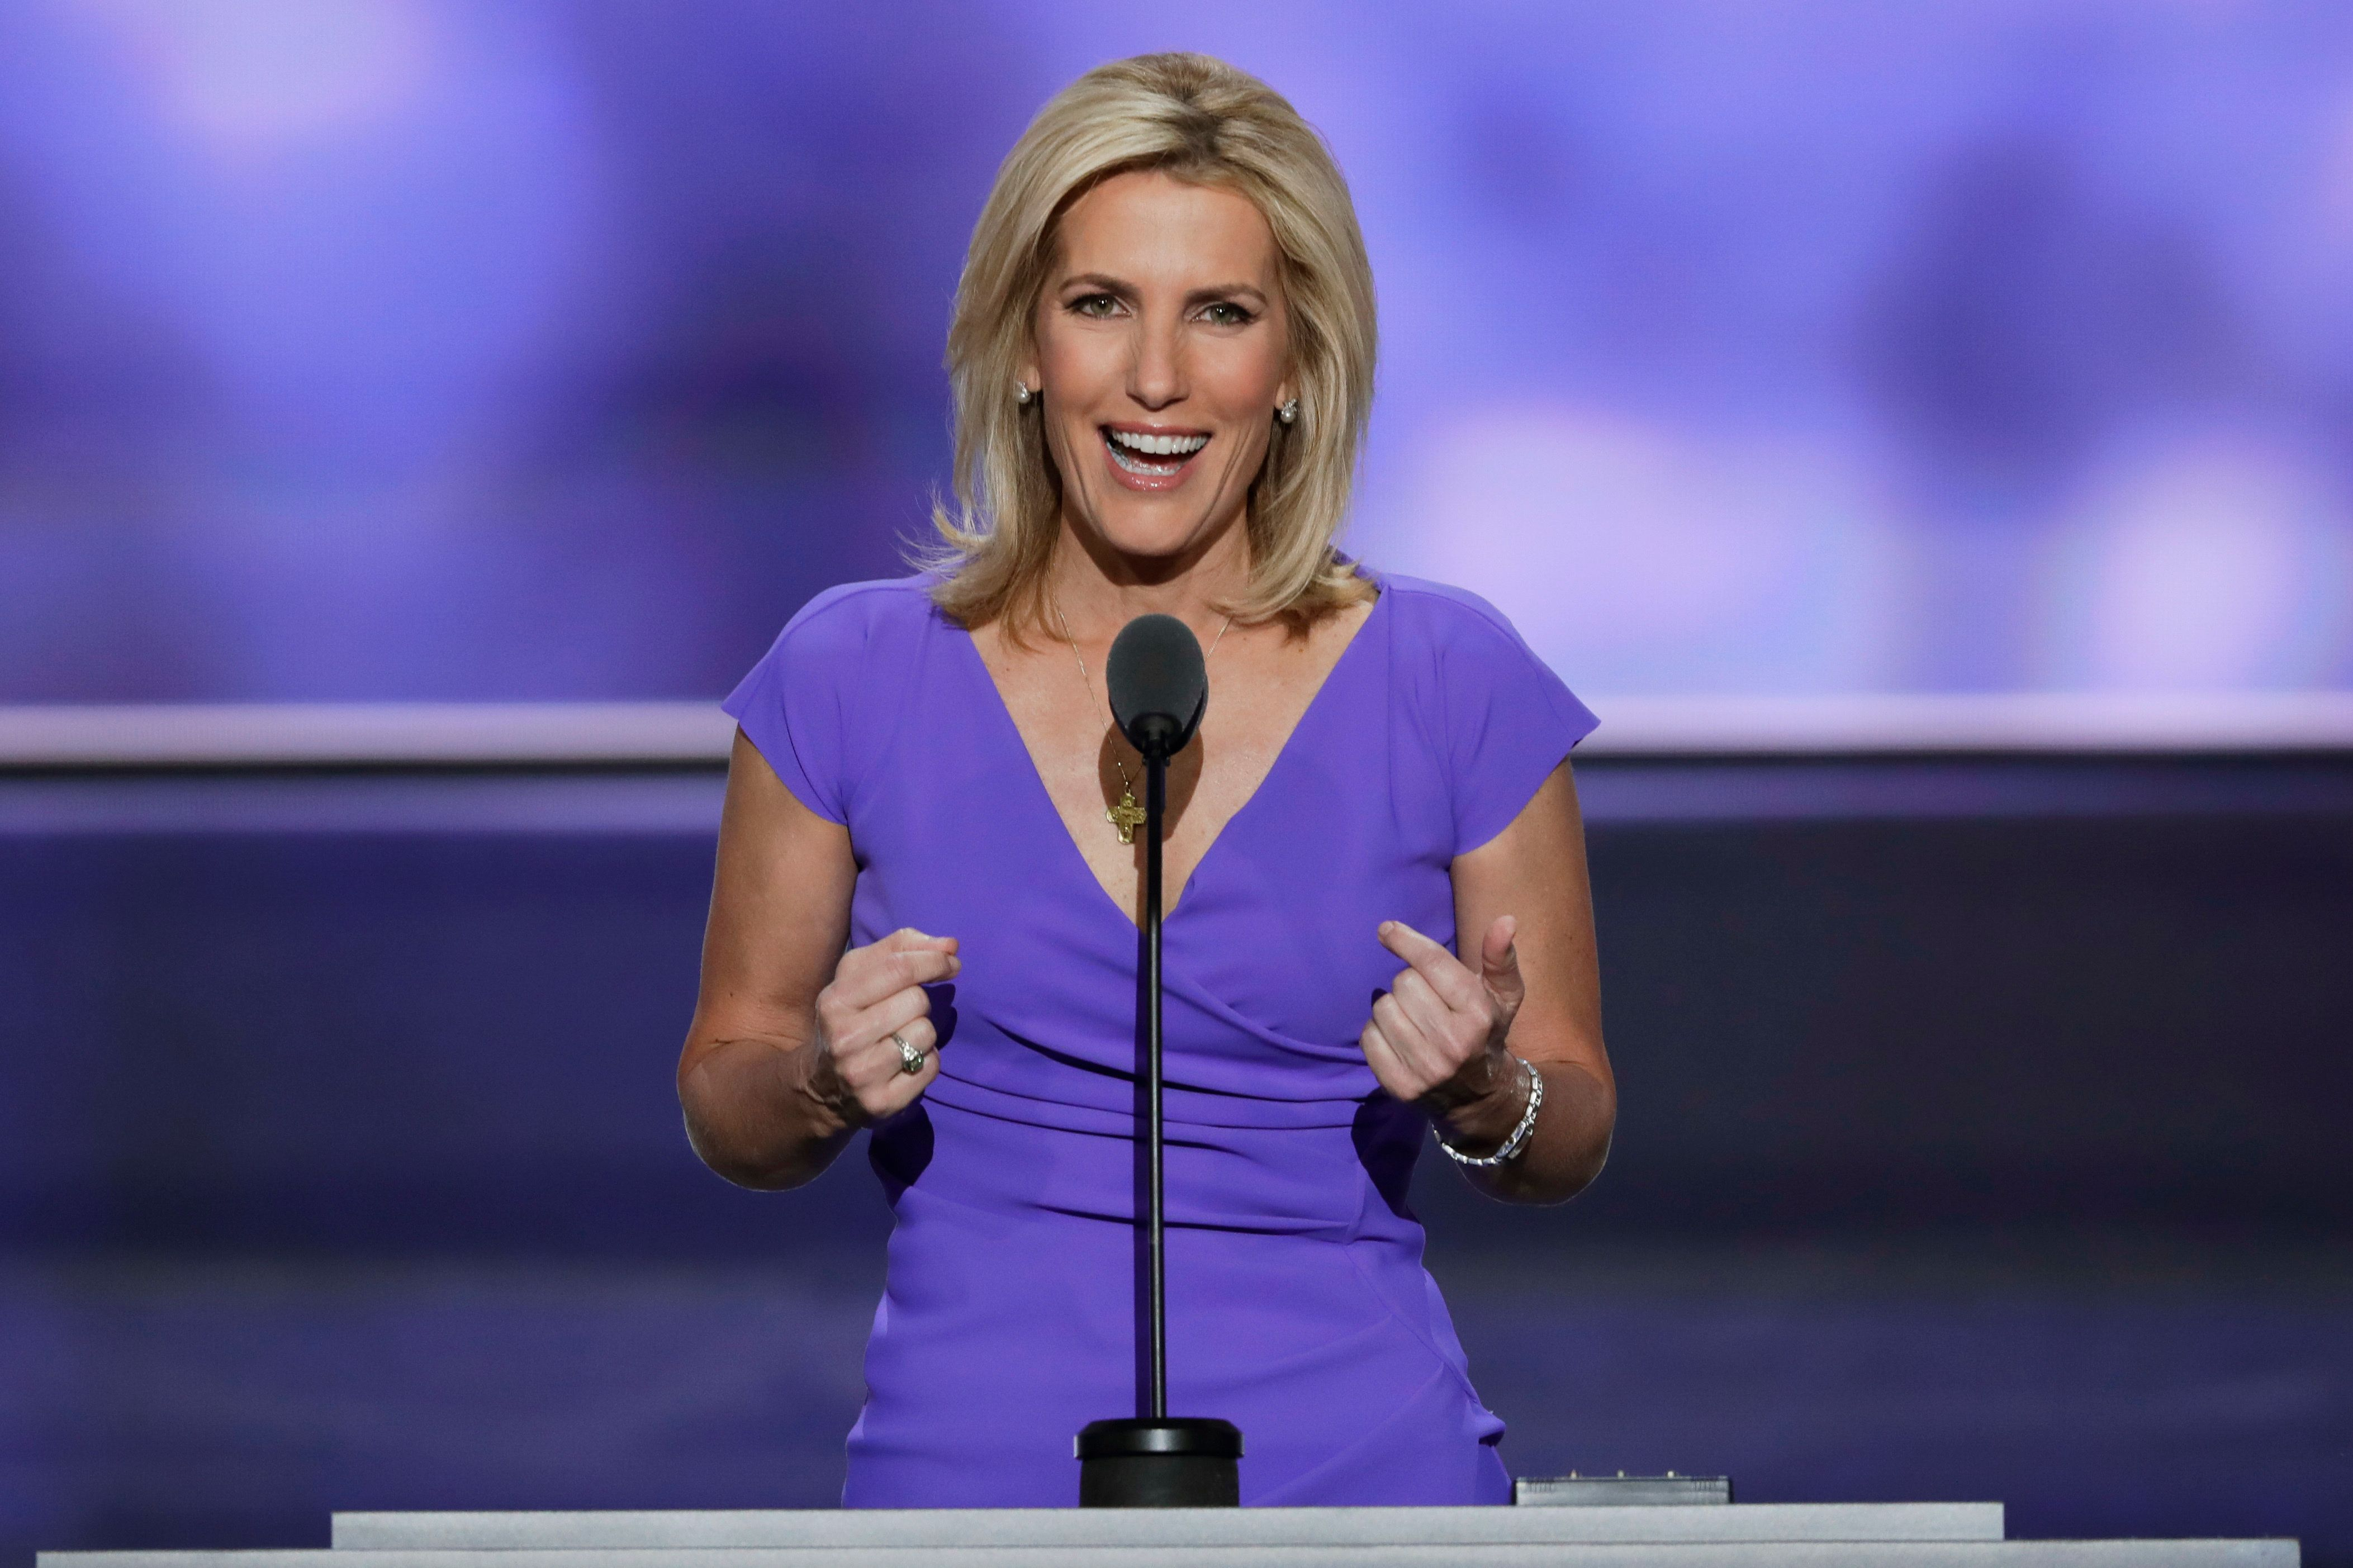 Fox News' Laura Ingraham Likens People Protesting Confederate Statues To